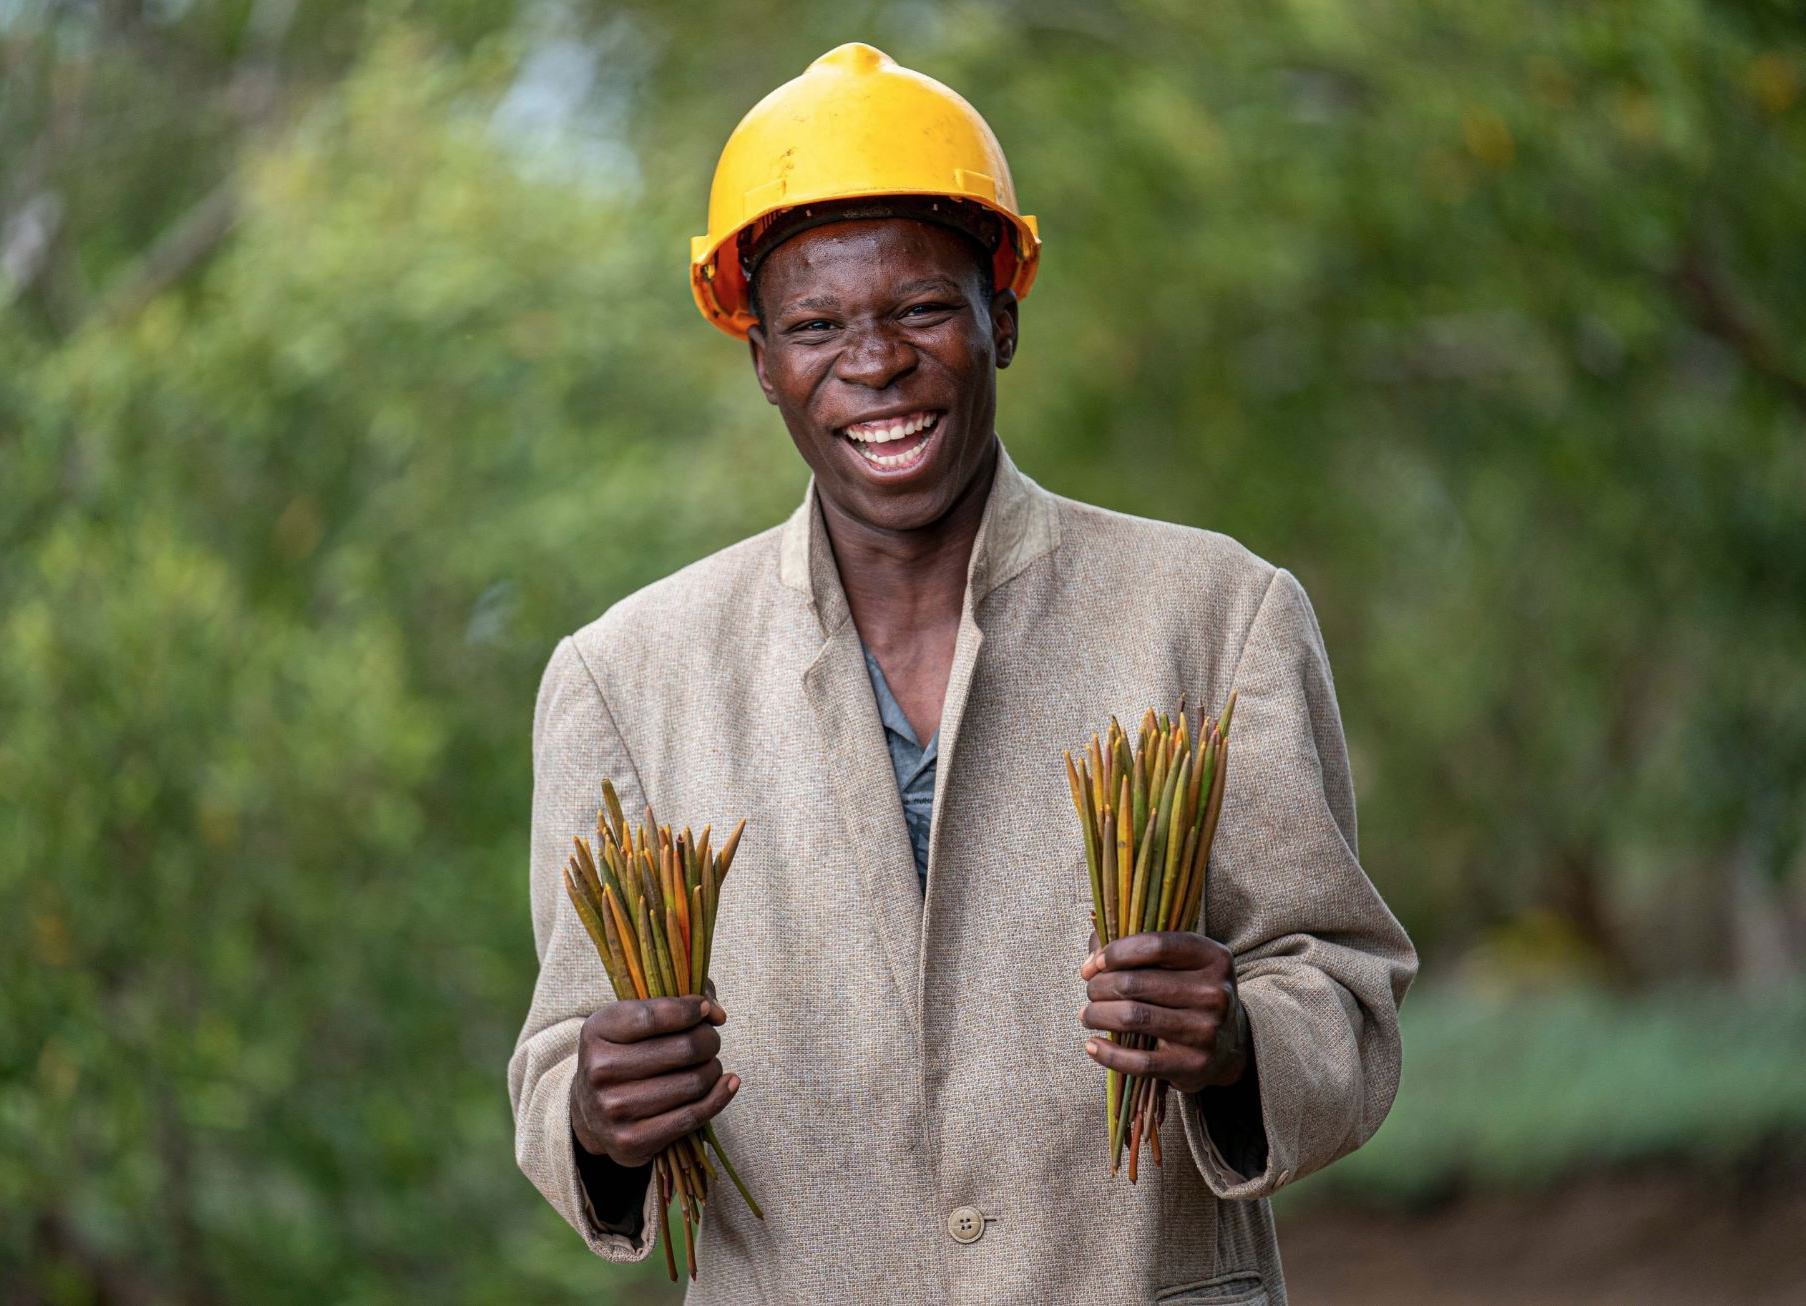 A worker photographed in 2019 at one of the Eden Reforestation Project's sites in Mozambique.